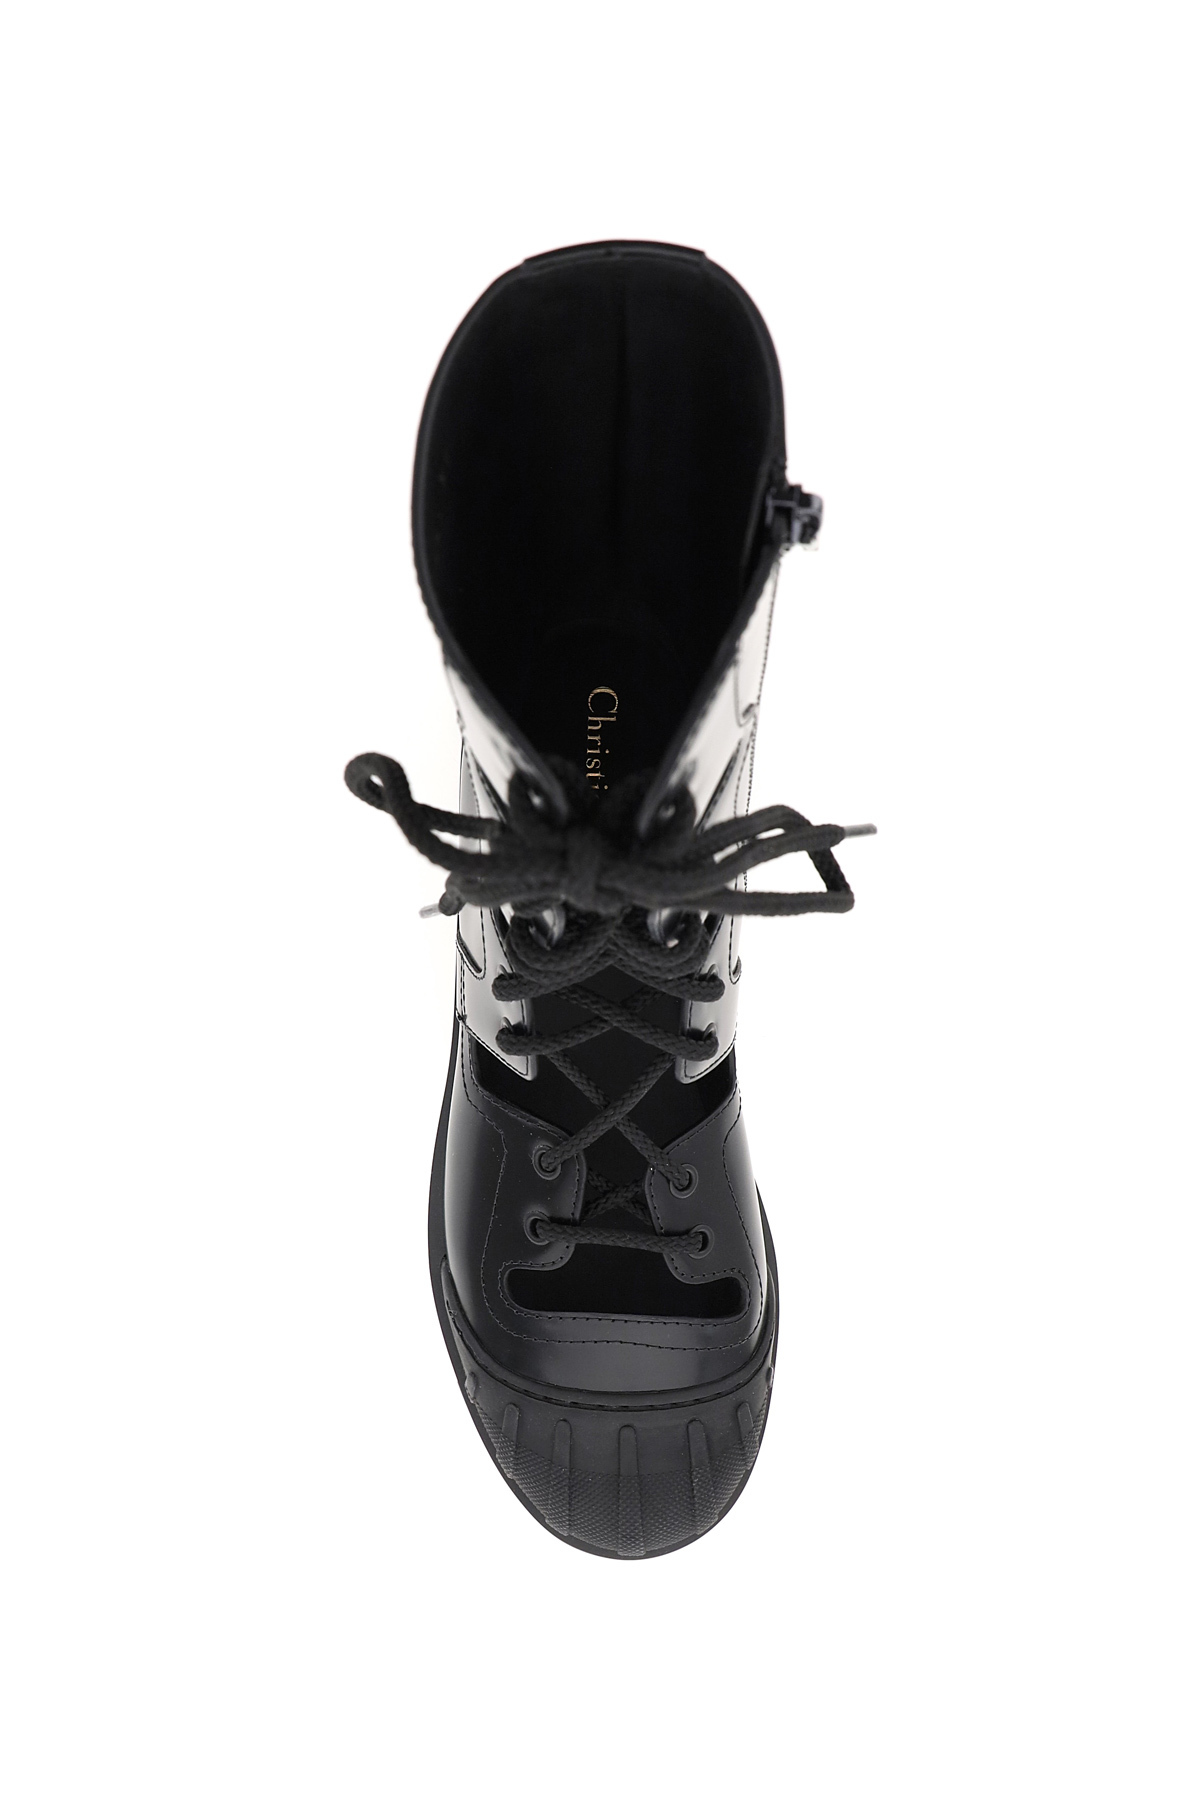 Dior dior iron low boots